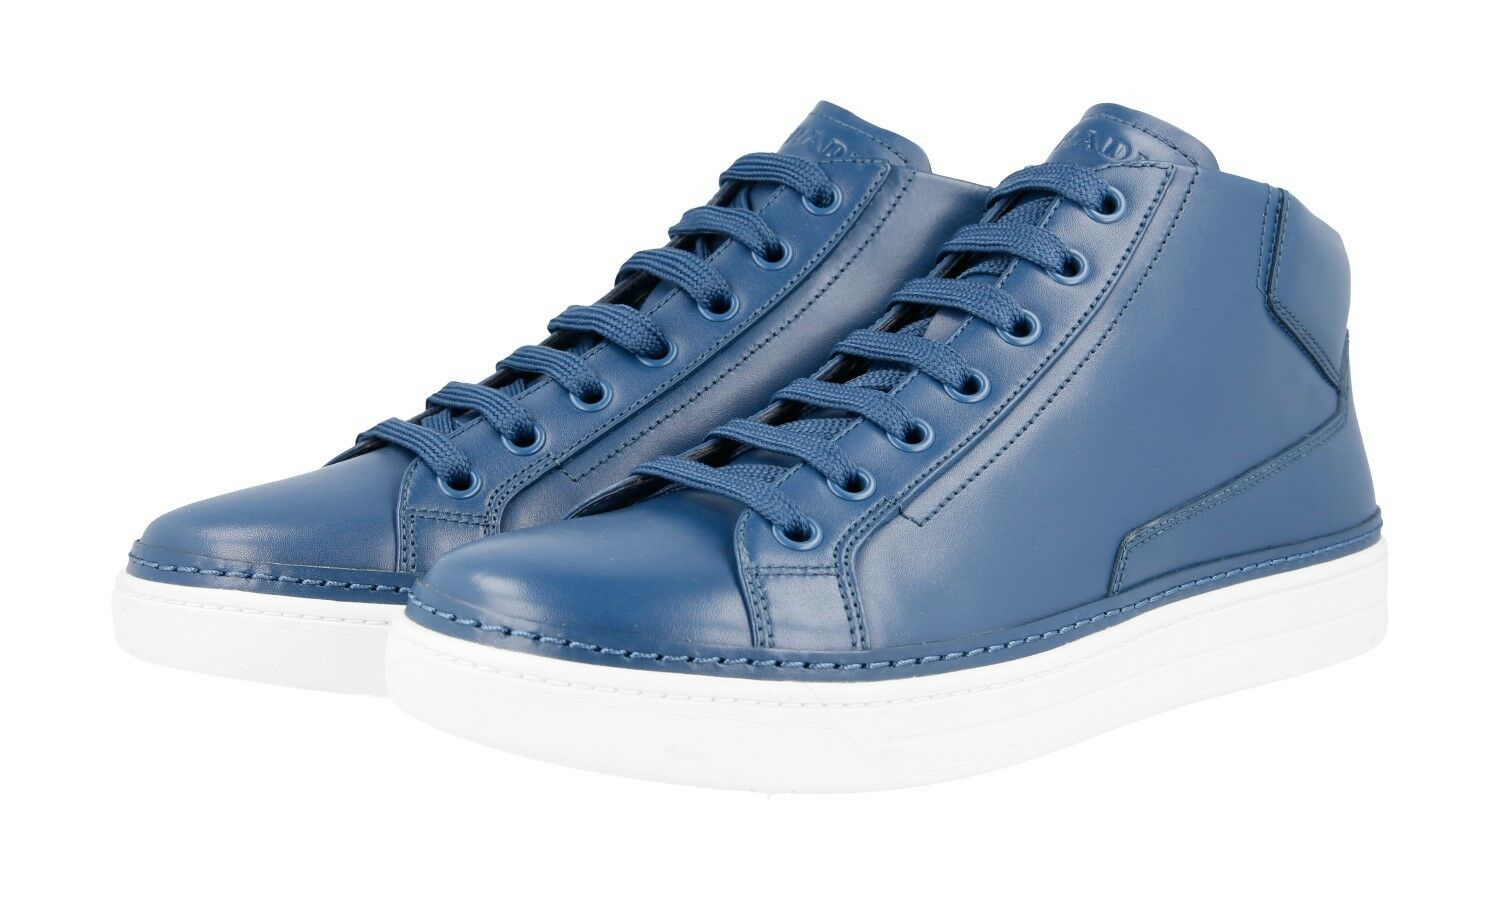 AUTH LUXURY PRADA HIGH TOP SNEAKERS SHOES 4T2863 blueE NEW 8 42 42,5